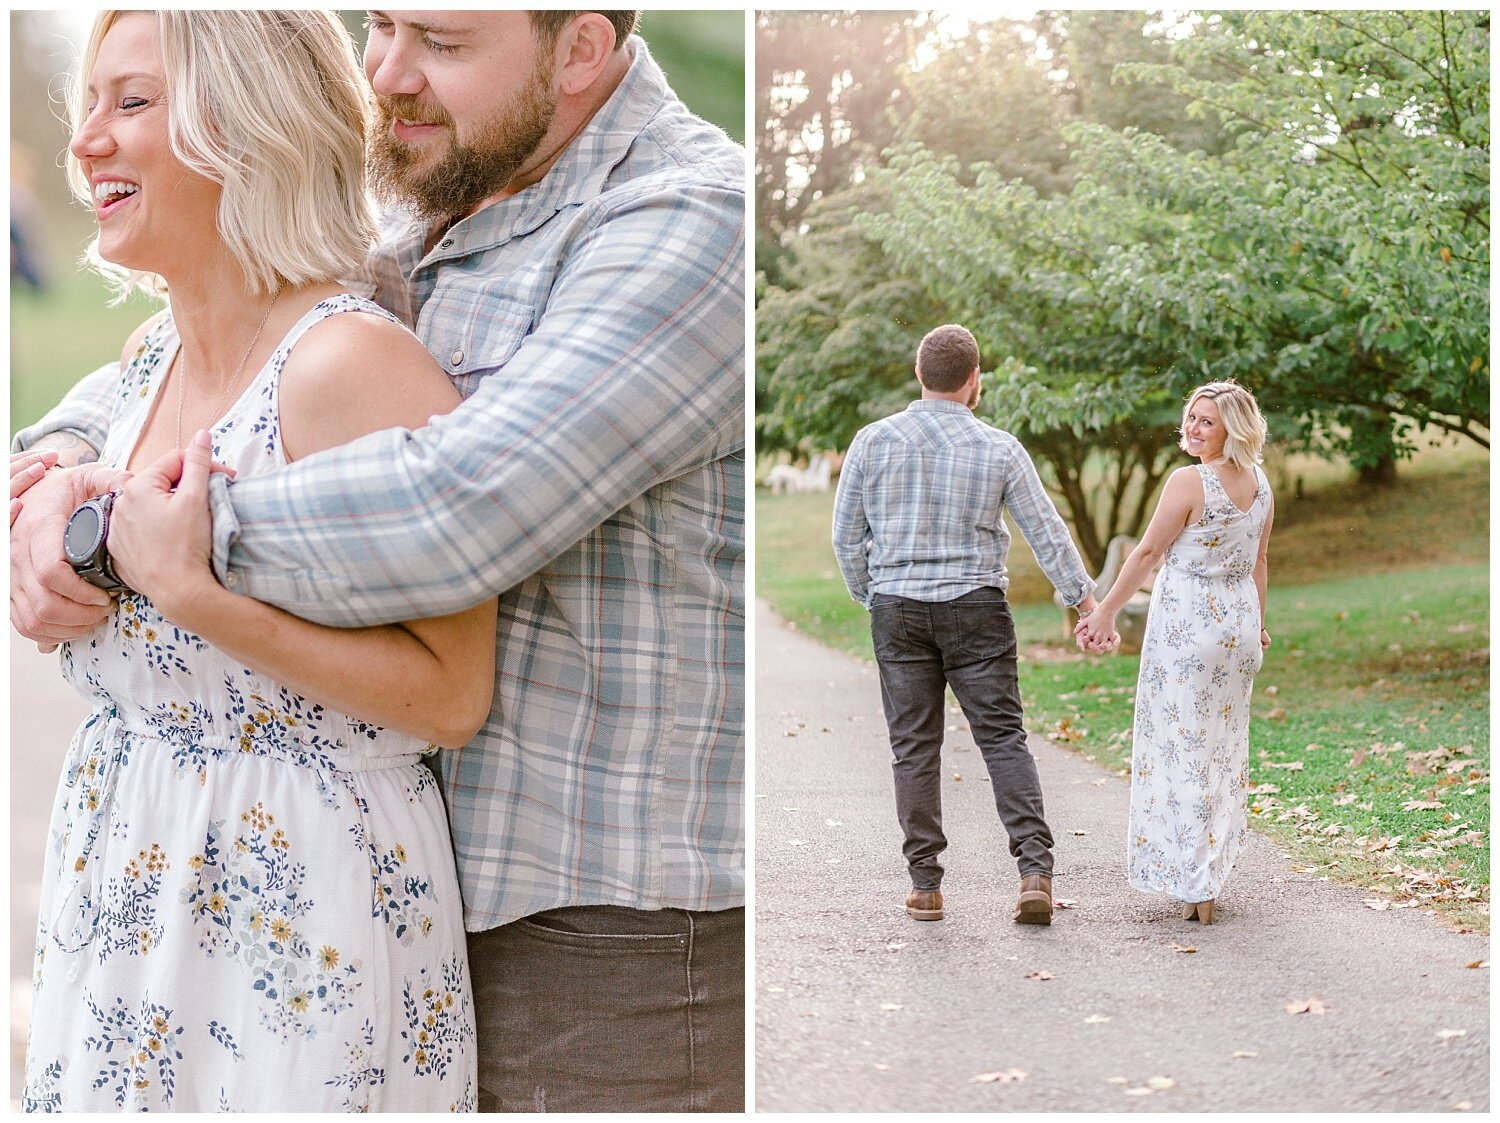 Allentown rose garden sunset engagement session with a tandem bike by lehigh valley pennsylvania based wedding and lifestyle photographer Jeannie Lytle of Lytle Photography Company_0011.jpg